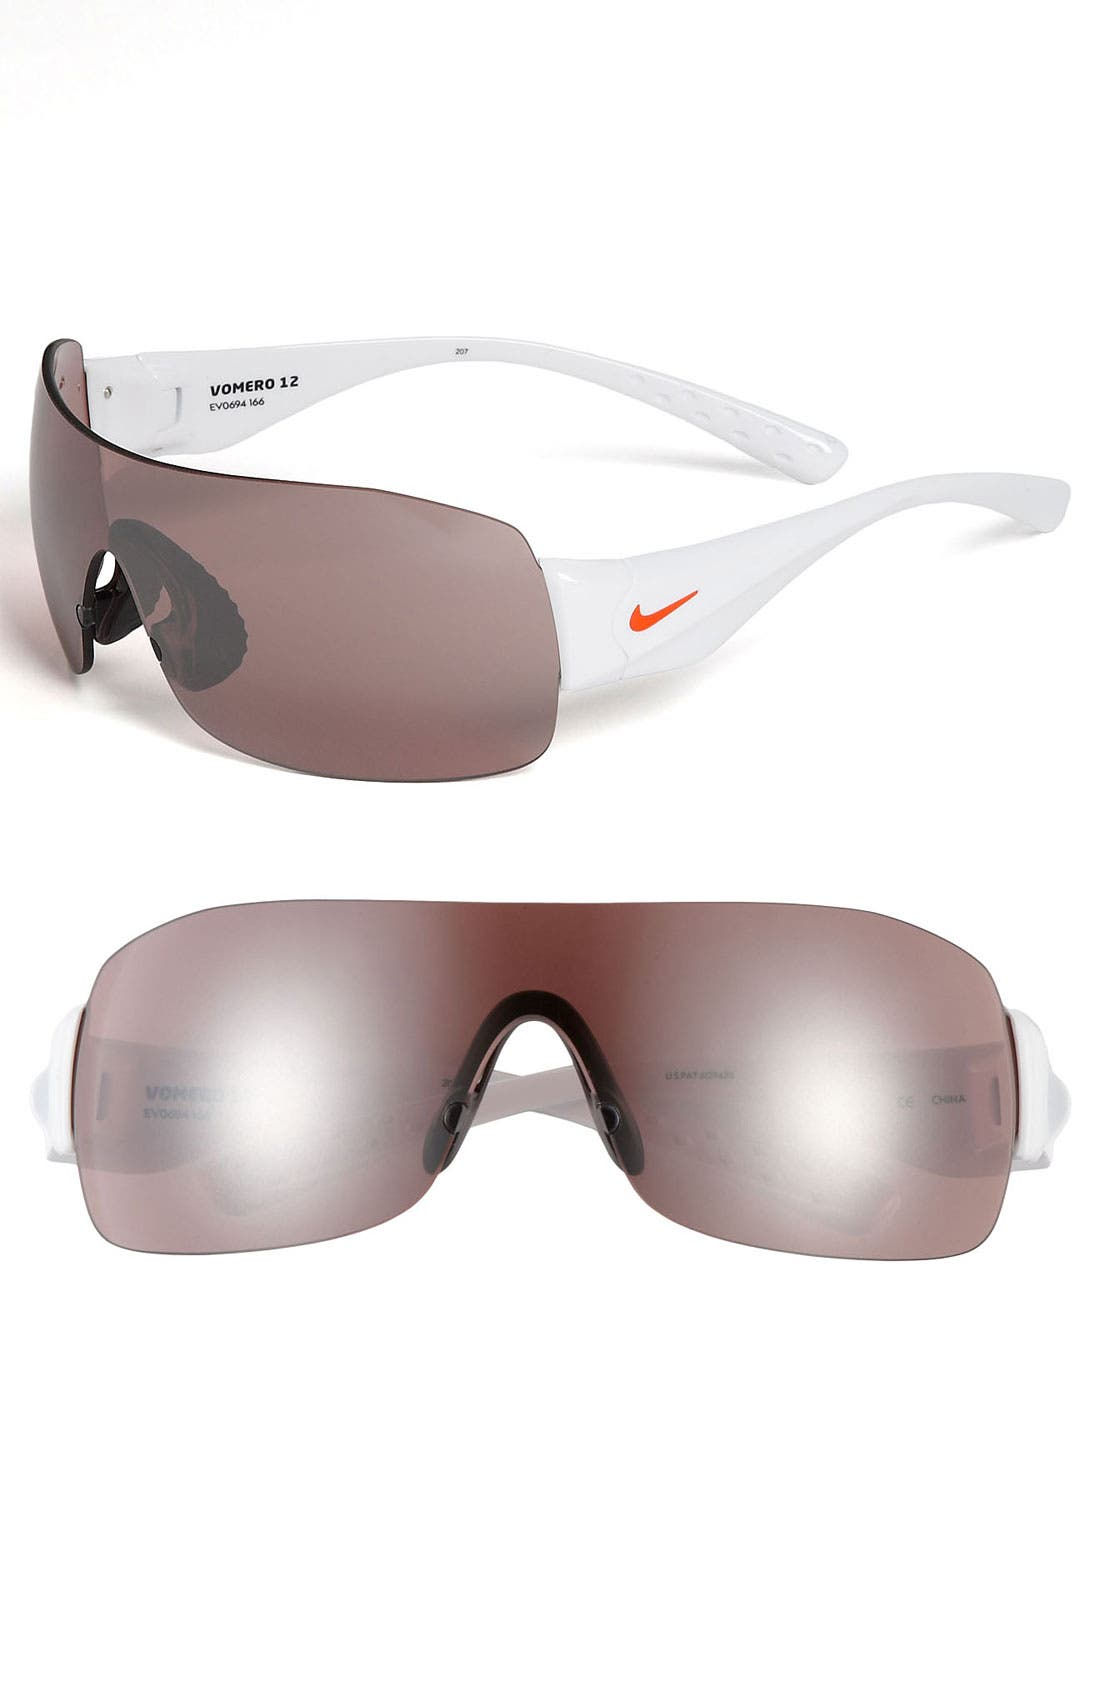 Alternate Image 1 Selected - Nike 'Vomero 12.E' 59mm Sunglasses